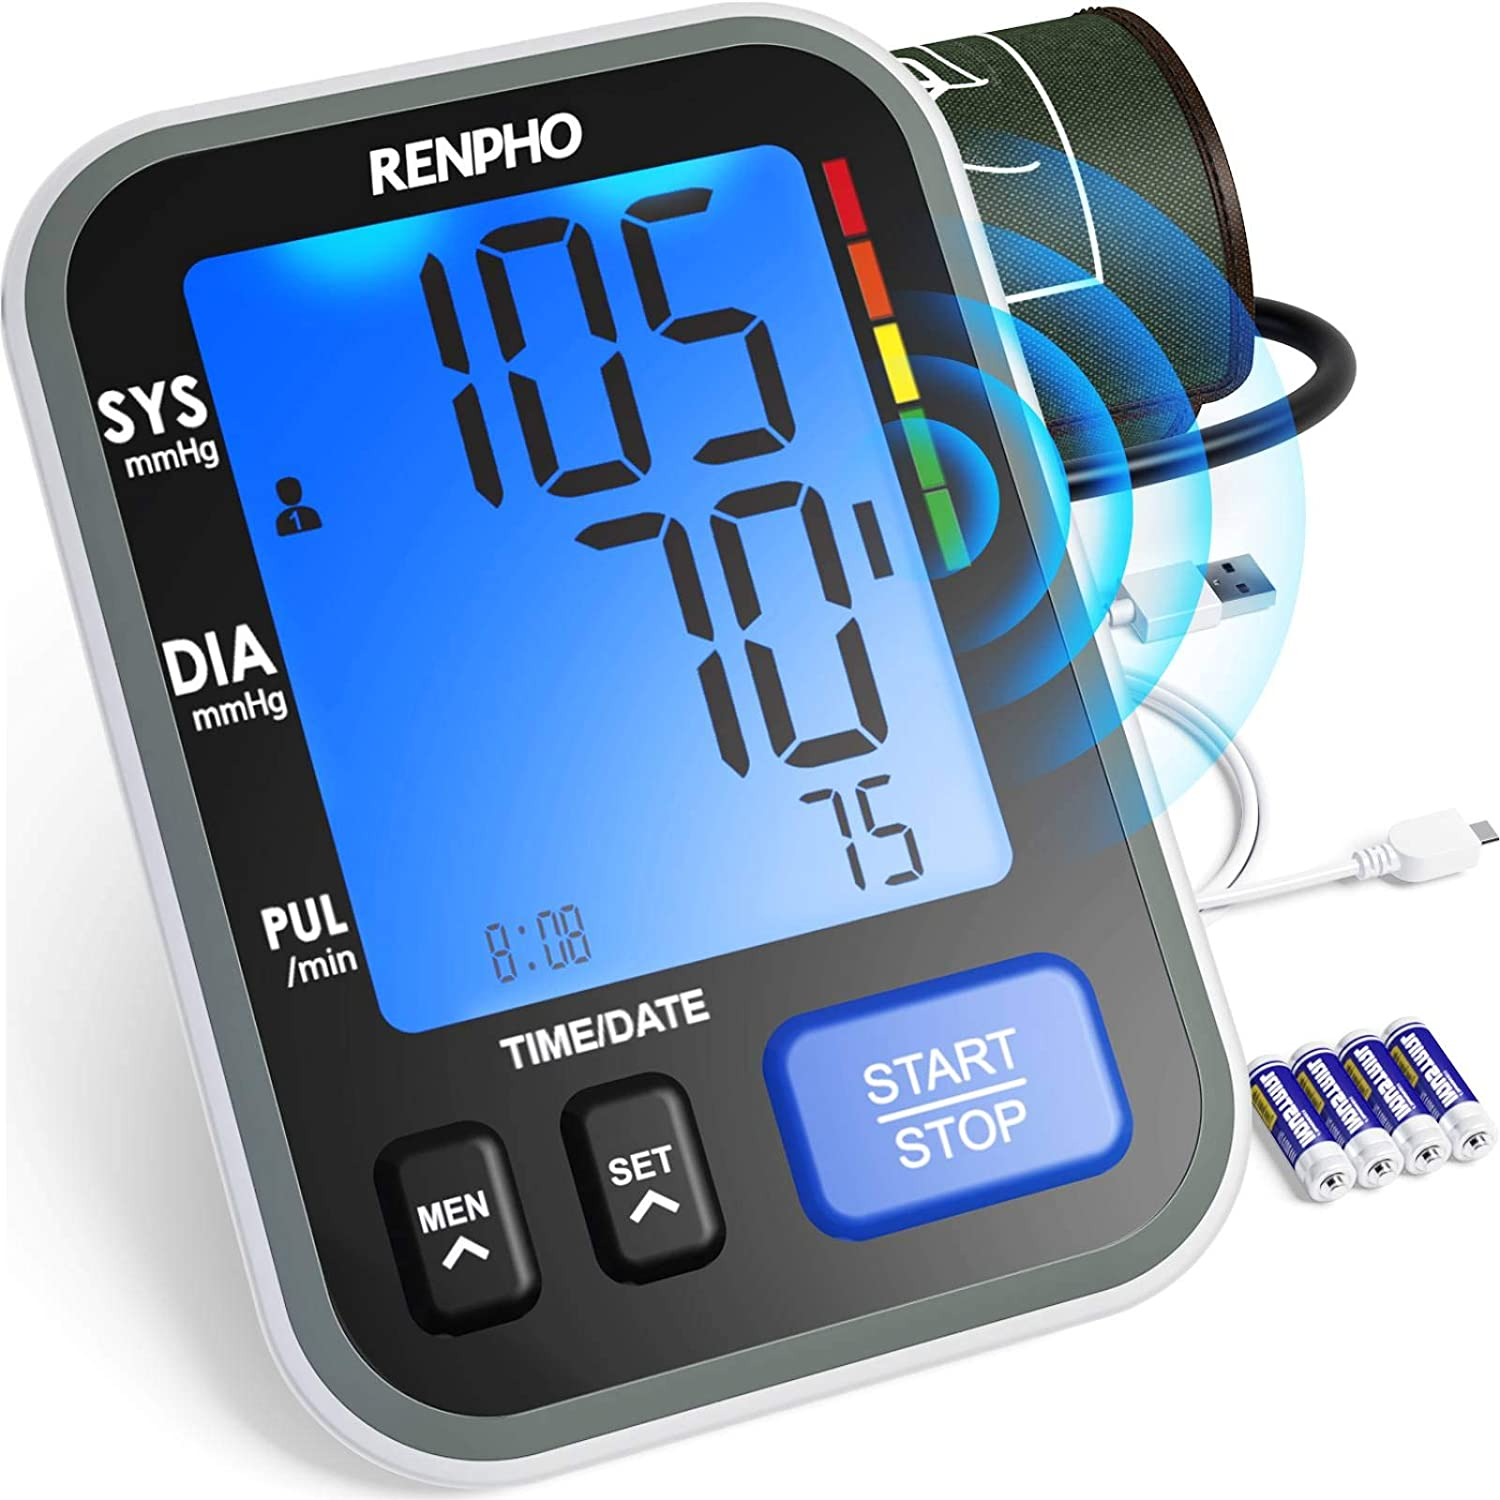 Blood Pressure Monitor, RENPHO Blood Pressure Cuffs for Home Use with Speaker, Accurate Automatic Digital BP Machine with Extra Large Cuff 16.5 inch, Large Display, 2-Users, 240 Recordings